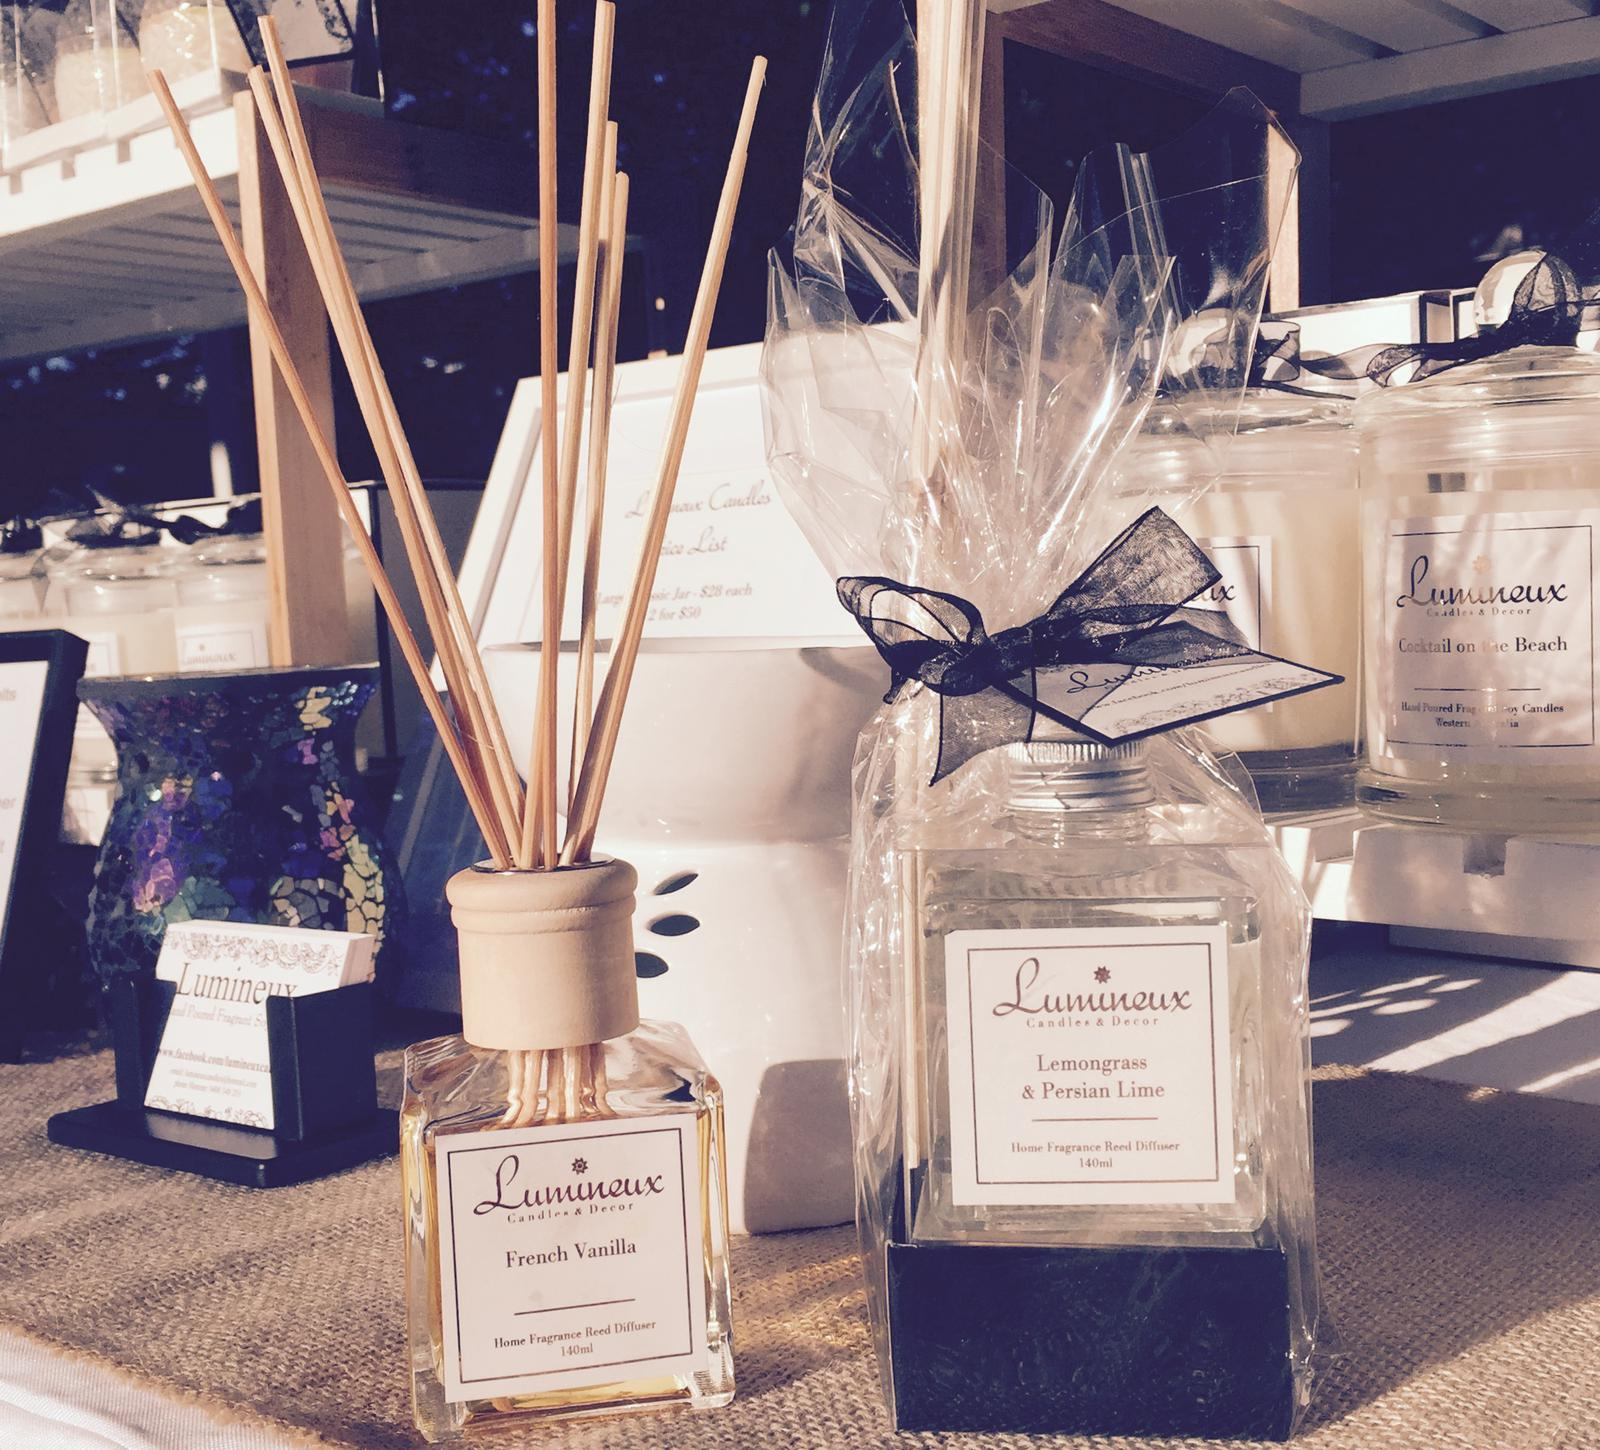 Fragrance Soy Candle and Diffusers